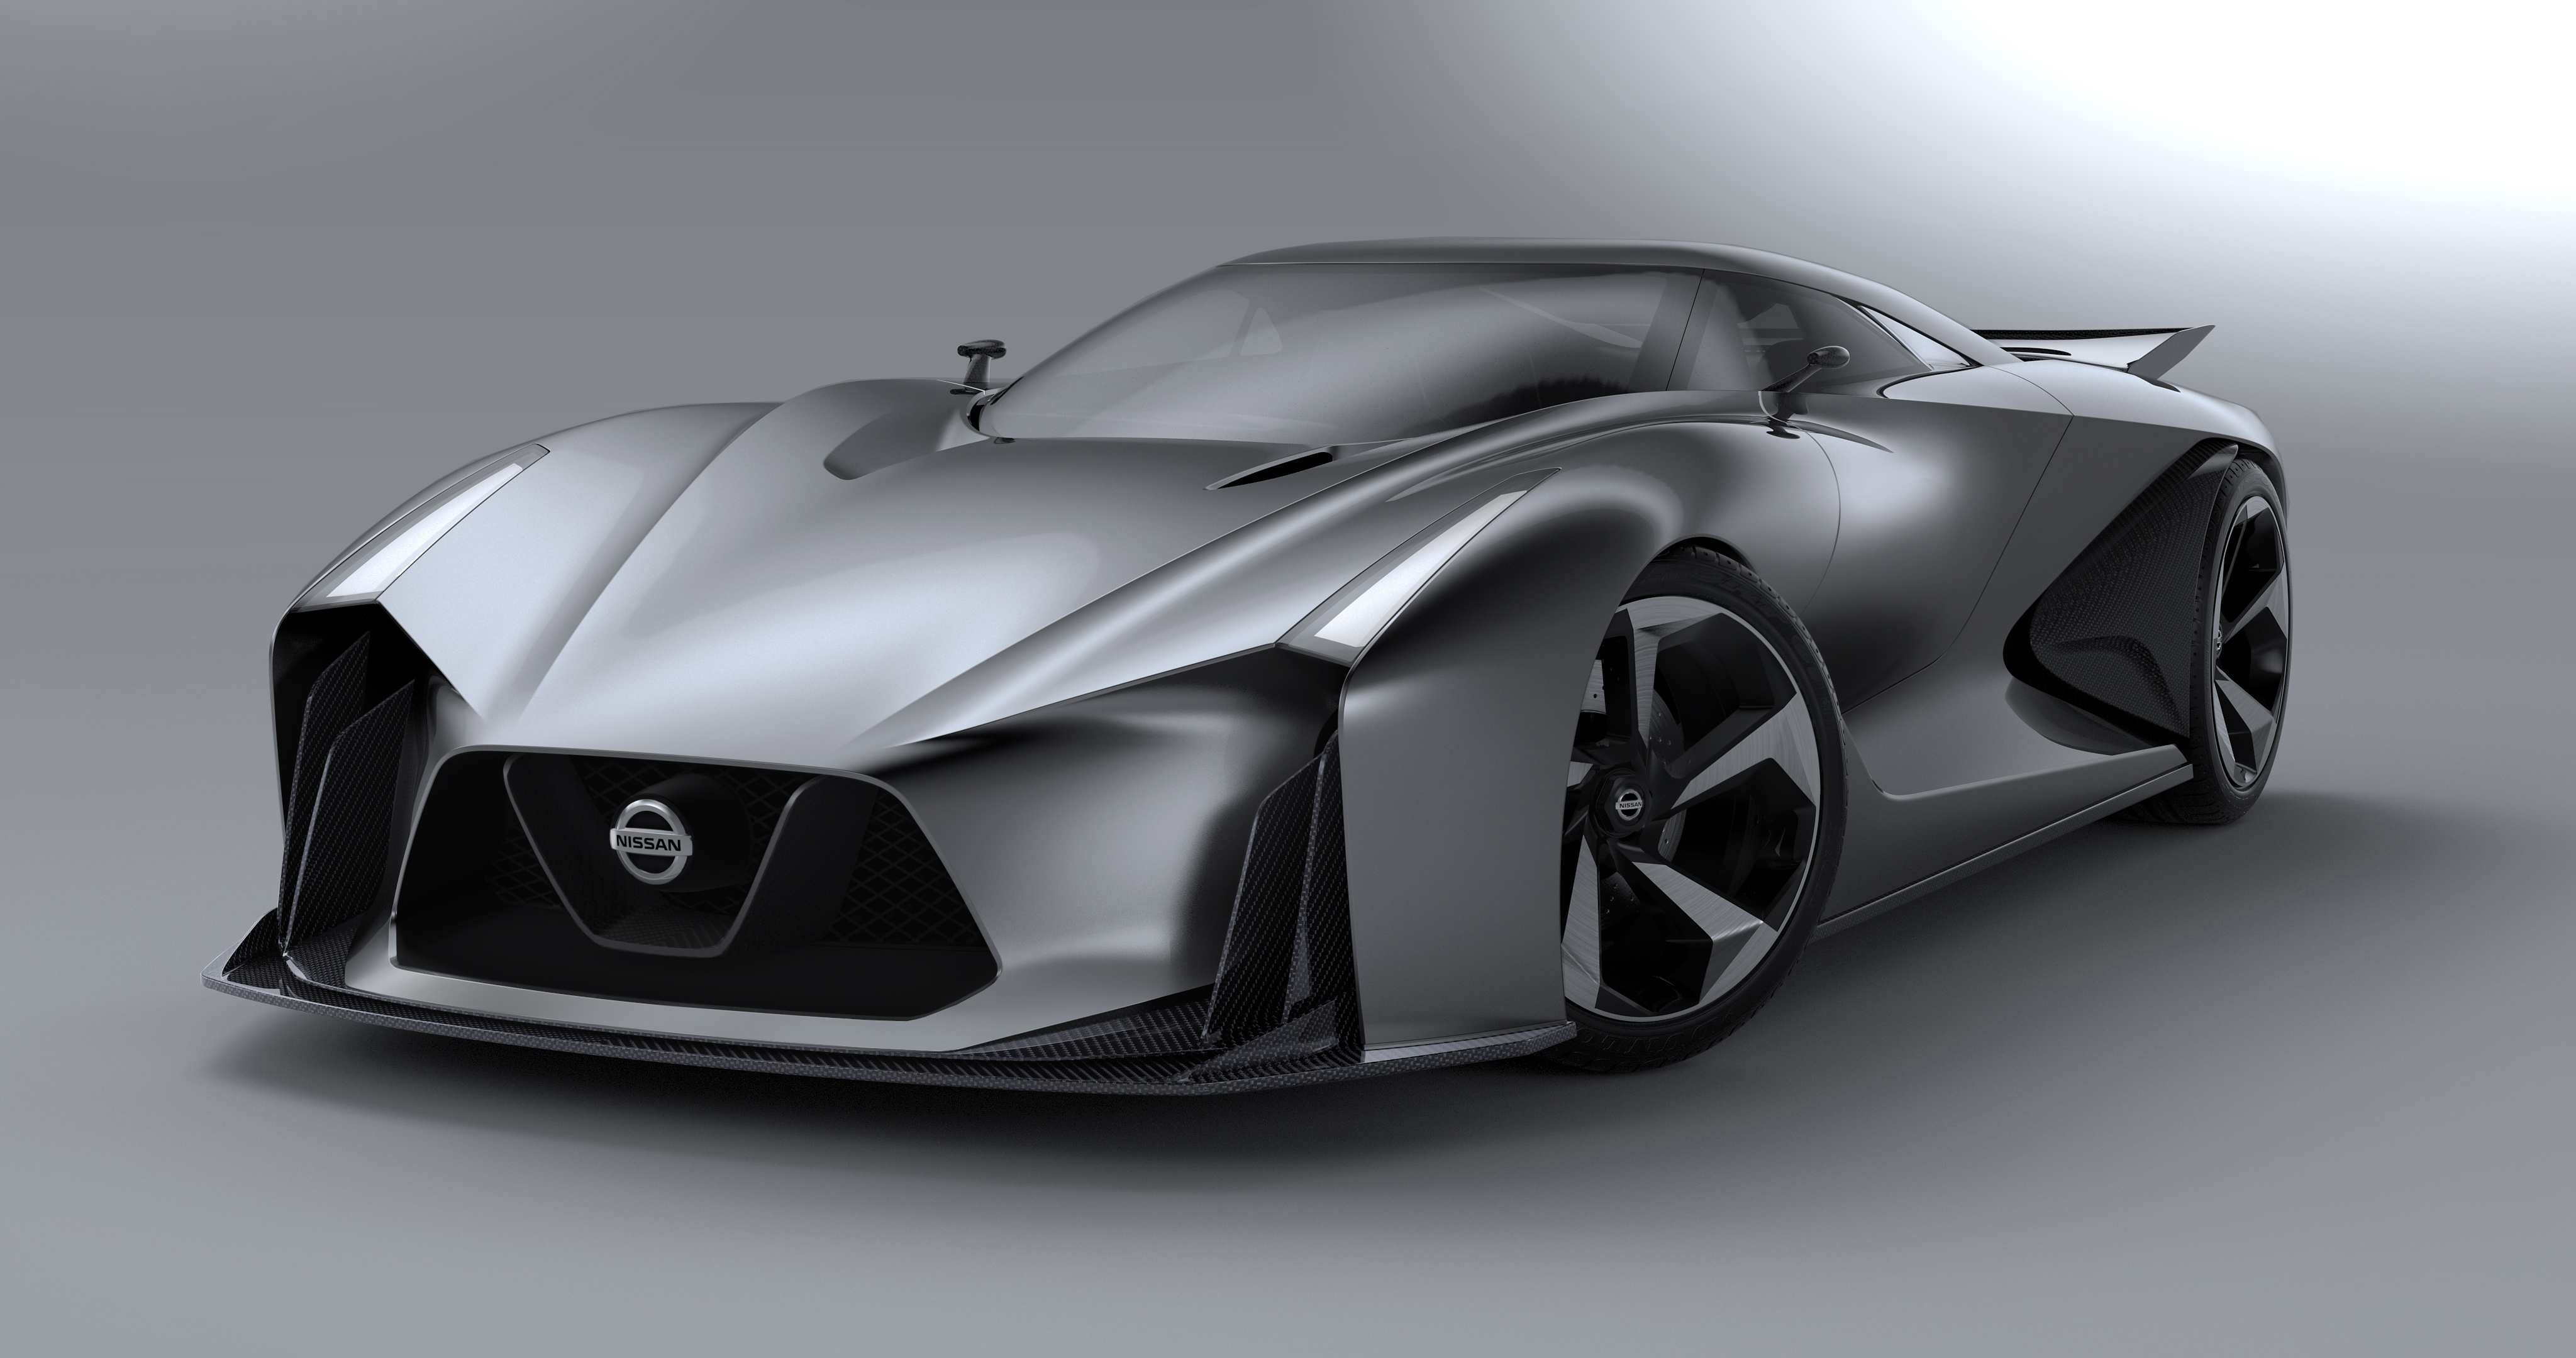 65 All New Nissan Concept 2020 Rumors